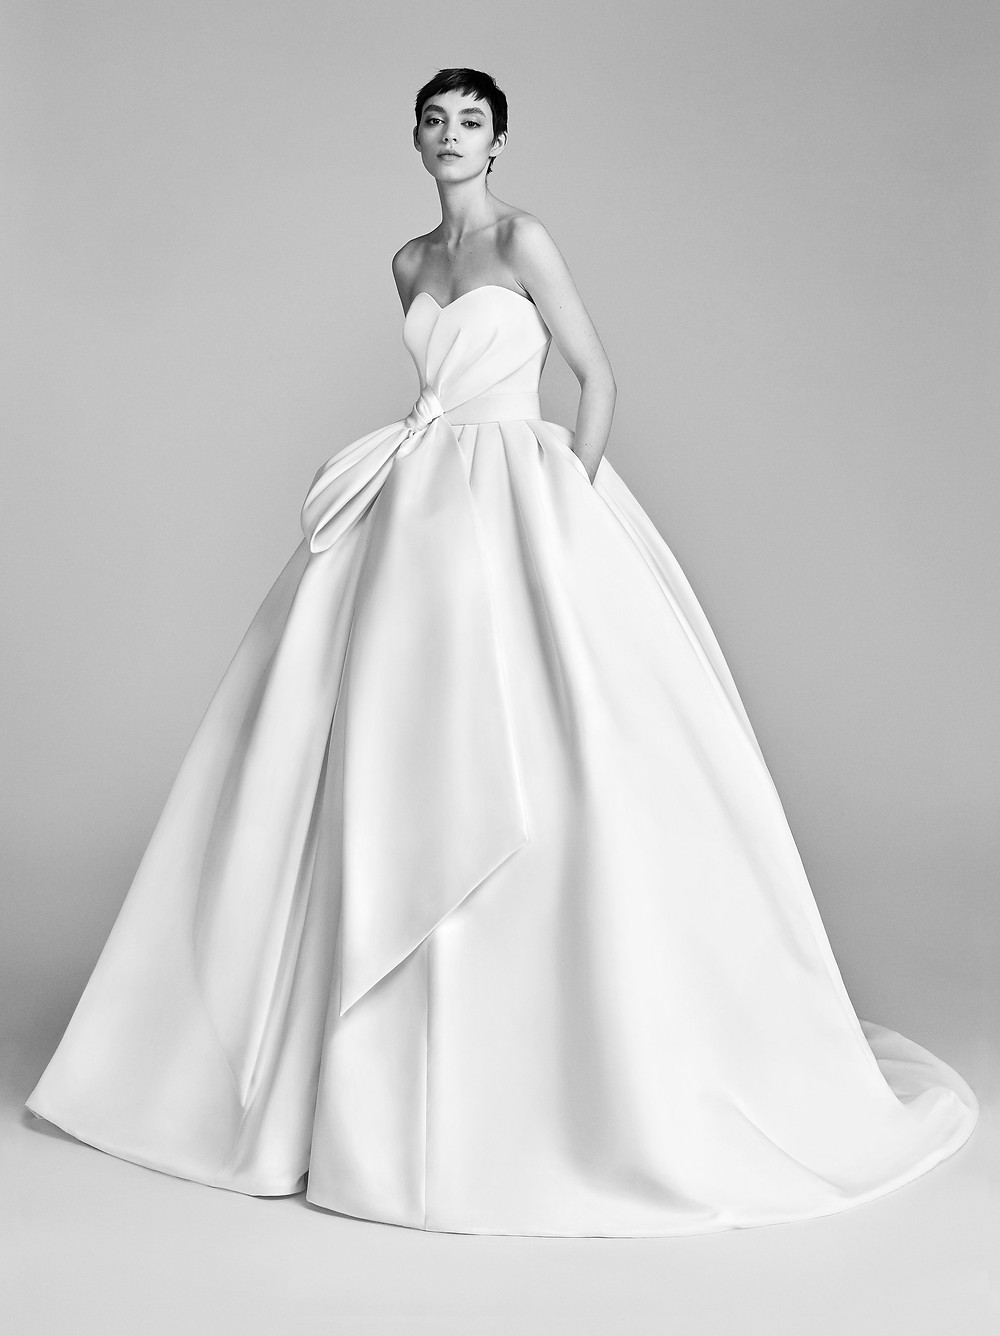 A Viktor & Rolf strapless silk ball gown wedding dress with a sweetheart neckline and a bow